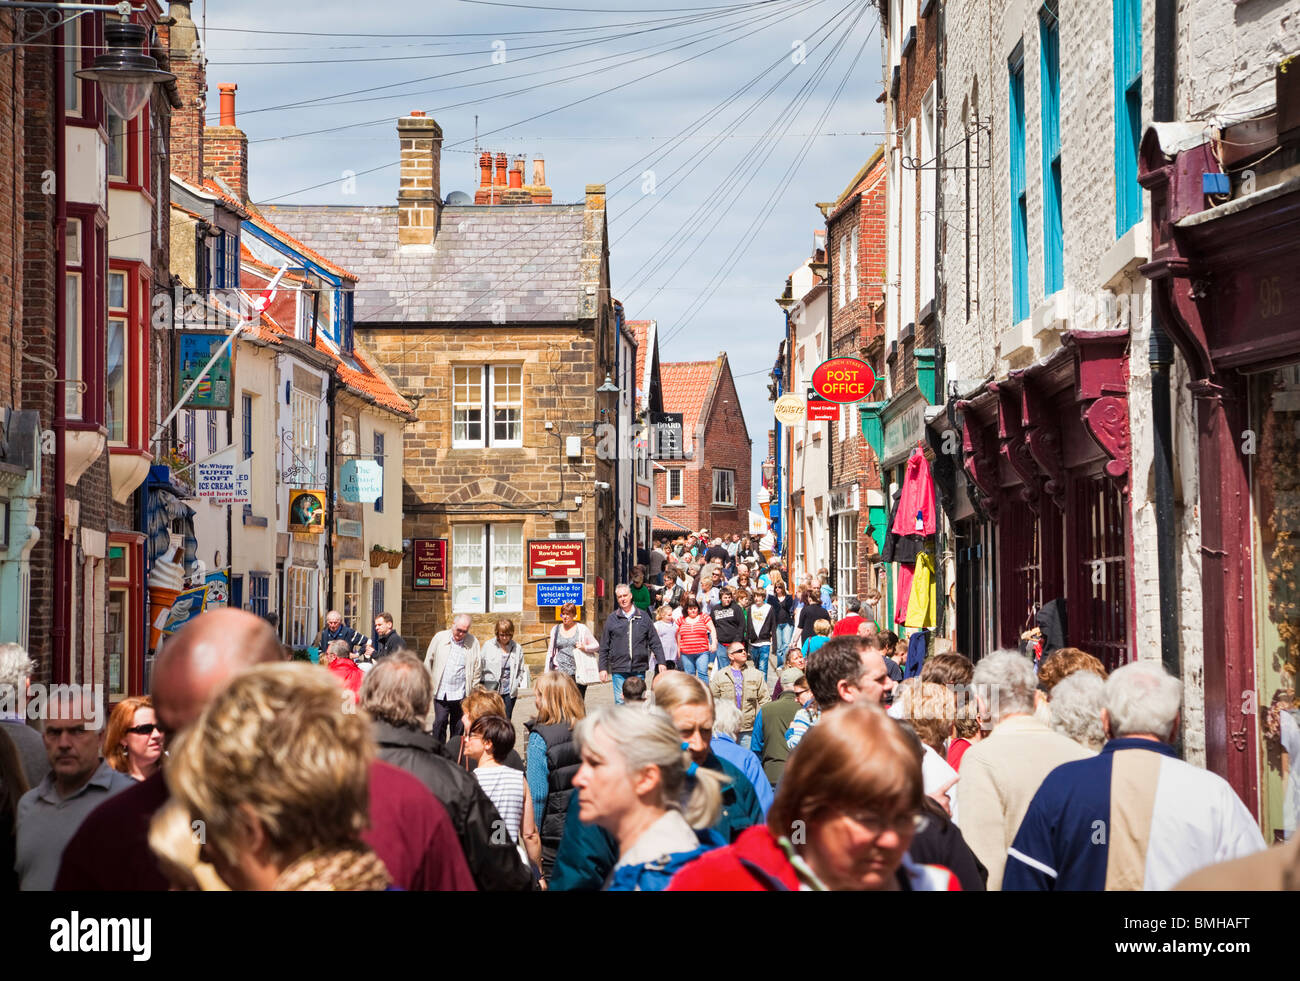 Crowded busy high street with shoppers in Whitby town centre, England, UK - Stock Image